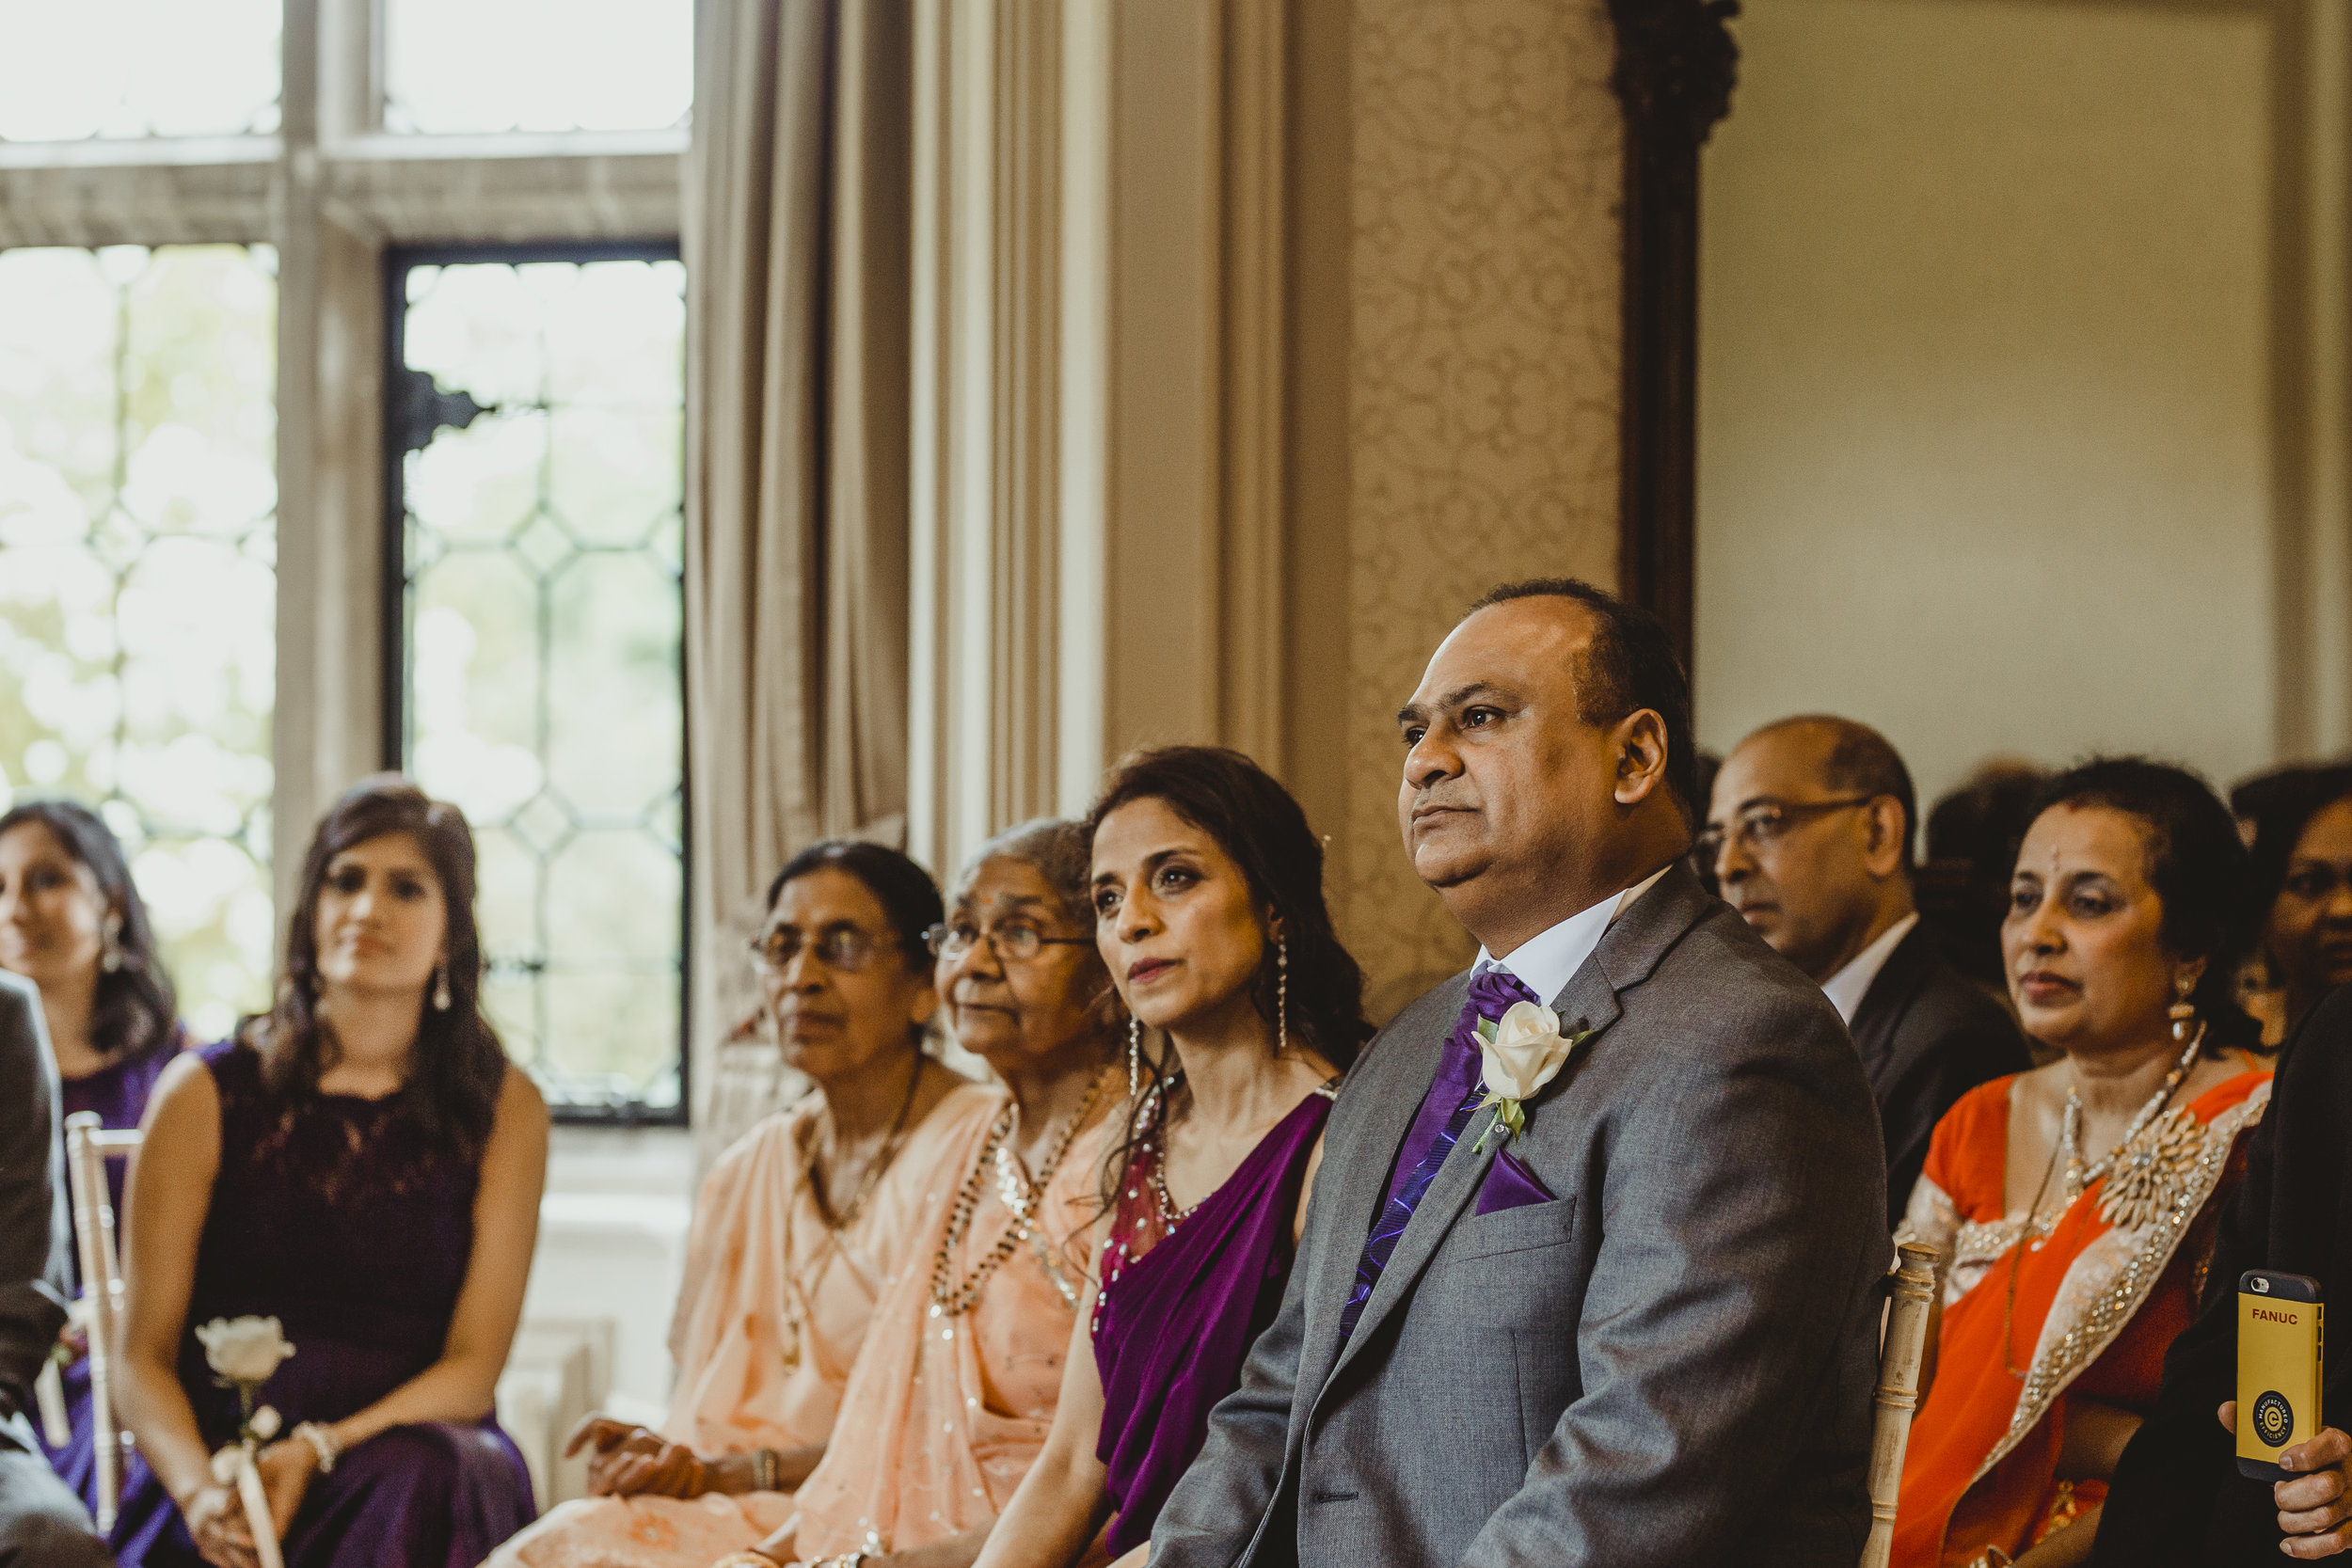 N&J_MILTON_KEYNES_WEDDING_LONDON_PHOTOGRAPHER_ASIAN_WEDDING-359.JPG